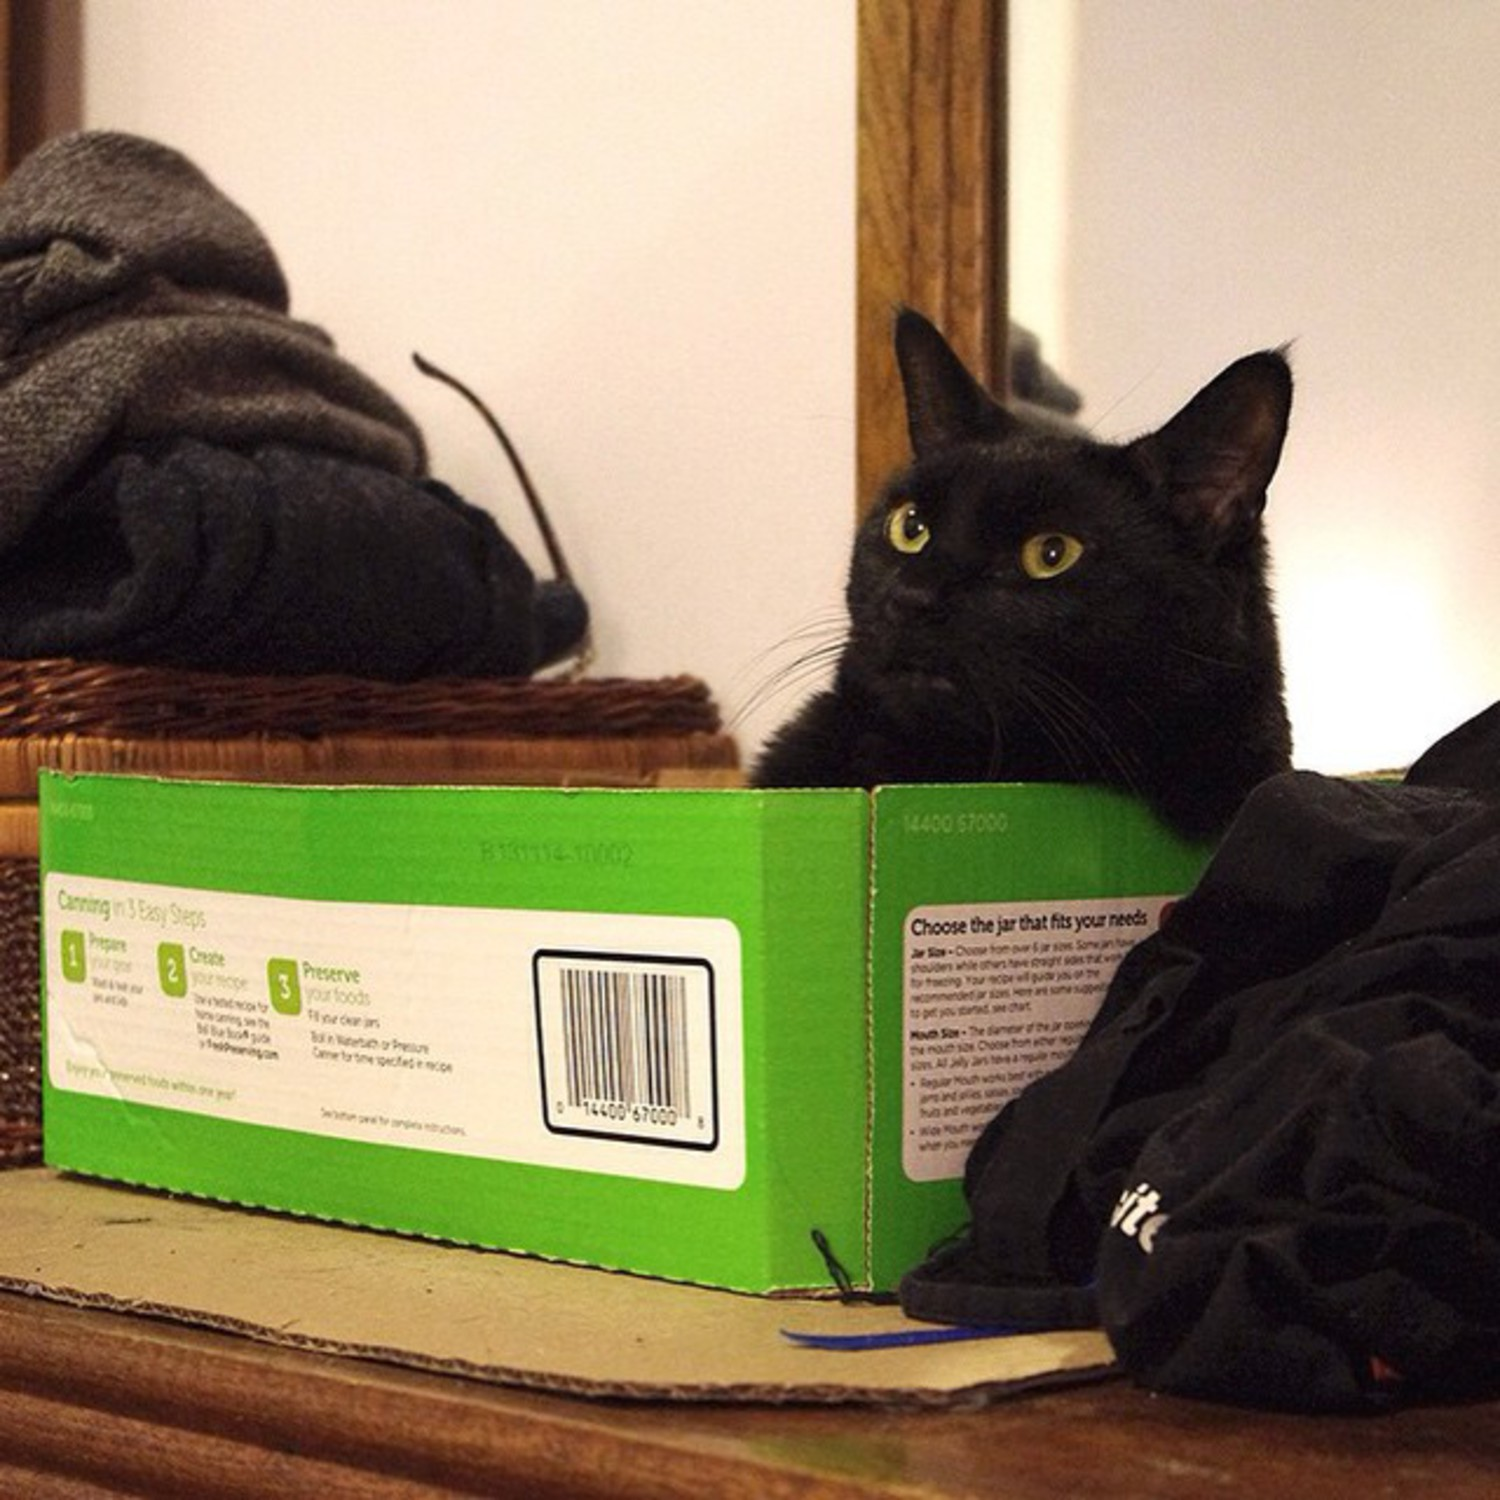 """My grandparents immigrated here from New Jersey with nothing, and now I have this box. I wish they could see me. They'd be like 'How the fuck did you get that box? We never had a box.' But I don't know, the box just kind of showed up so I sat in it."" Jeddy, Bay Ridge  #felinesofnewyork #felinesofinstagram #humansofnewyork"